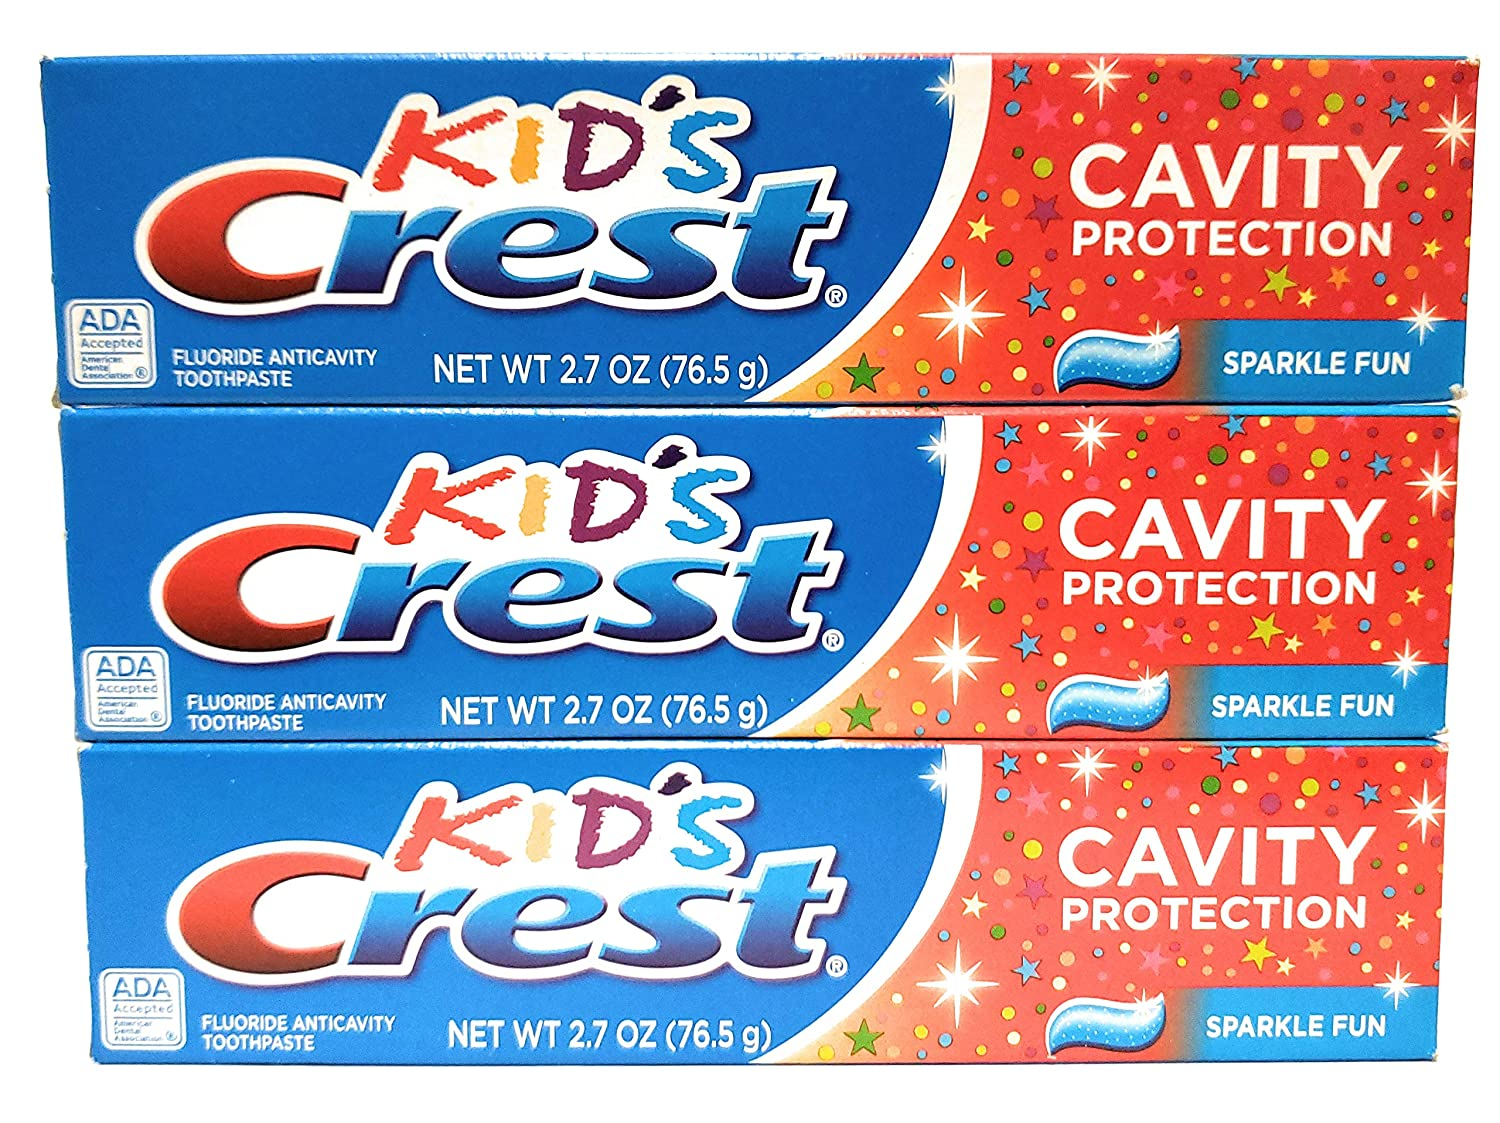 Crest Kid's Sparkle Fun Toothpaste Cavity Protection 2.7oz (3 Pack)